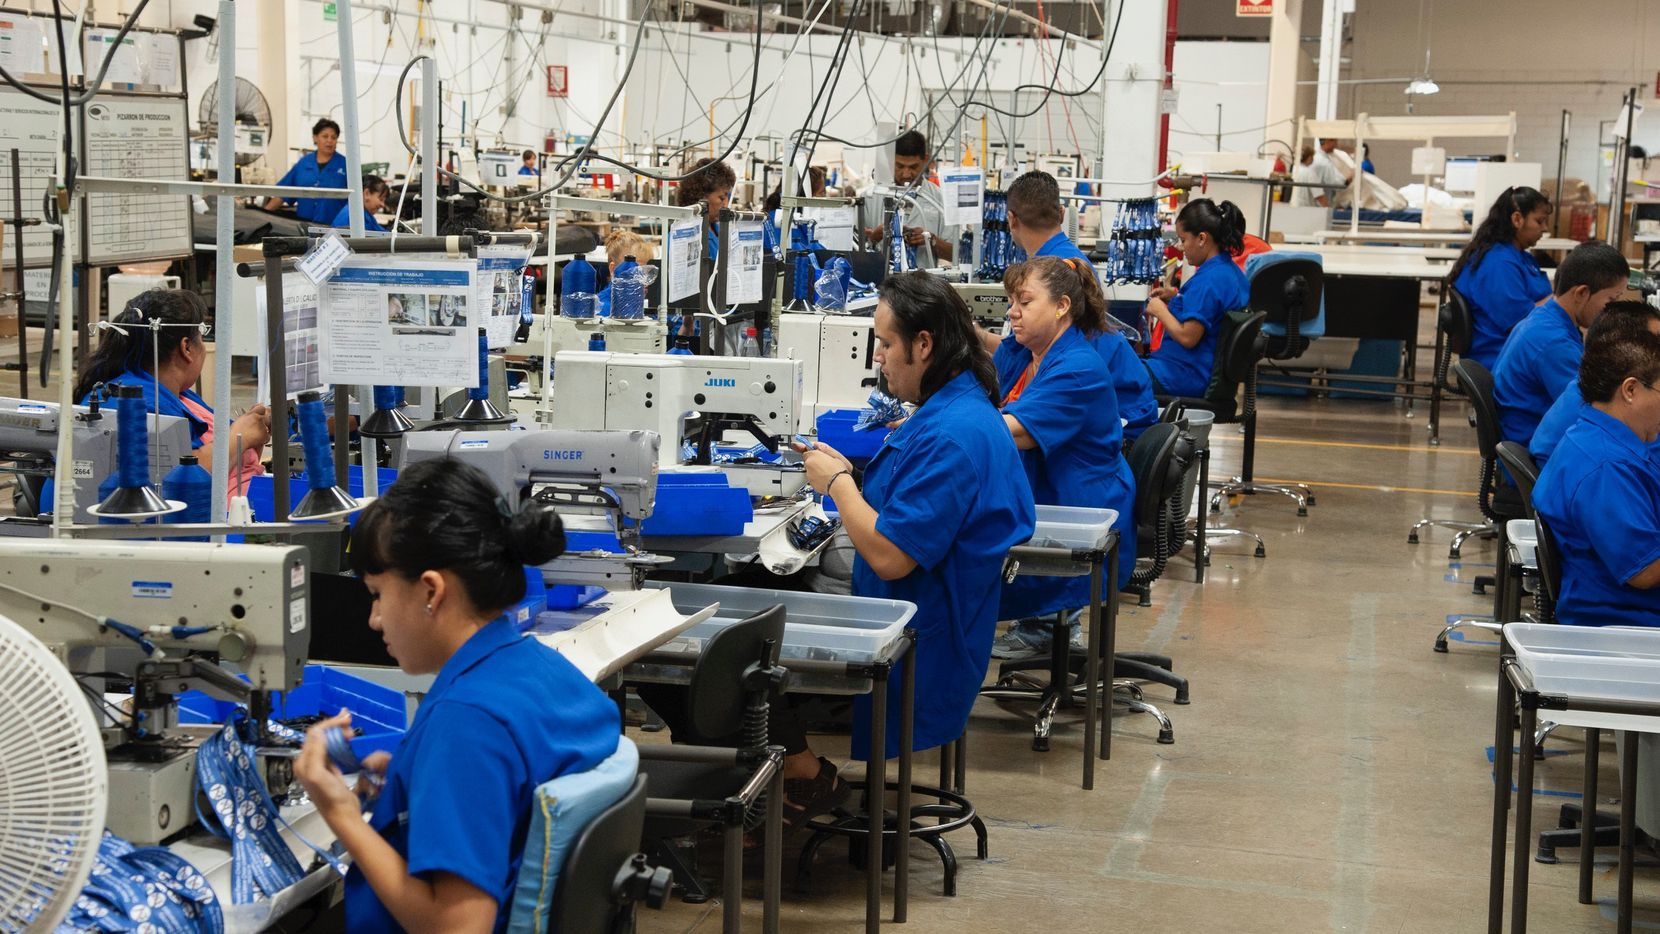 Chihuahua created 13,960 formal jobs in July